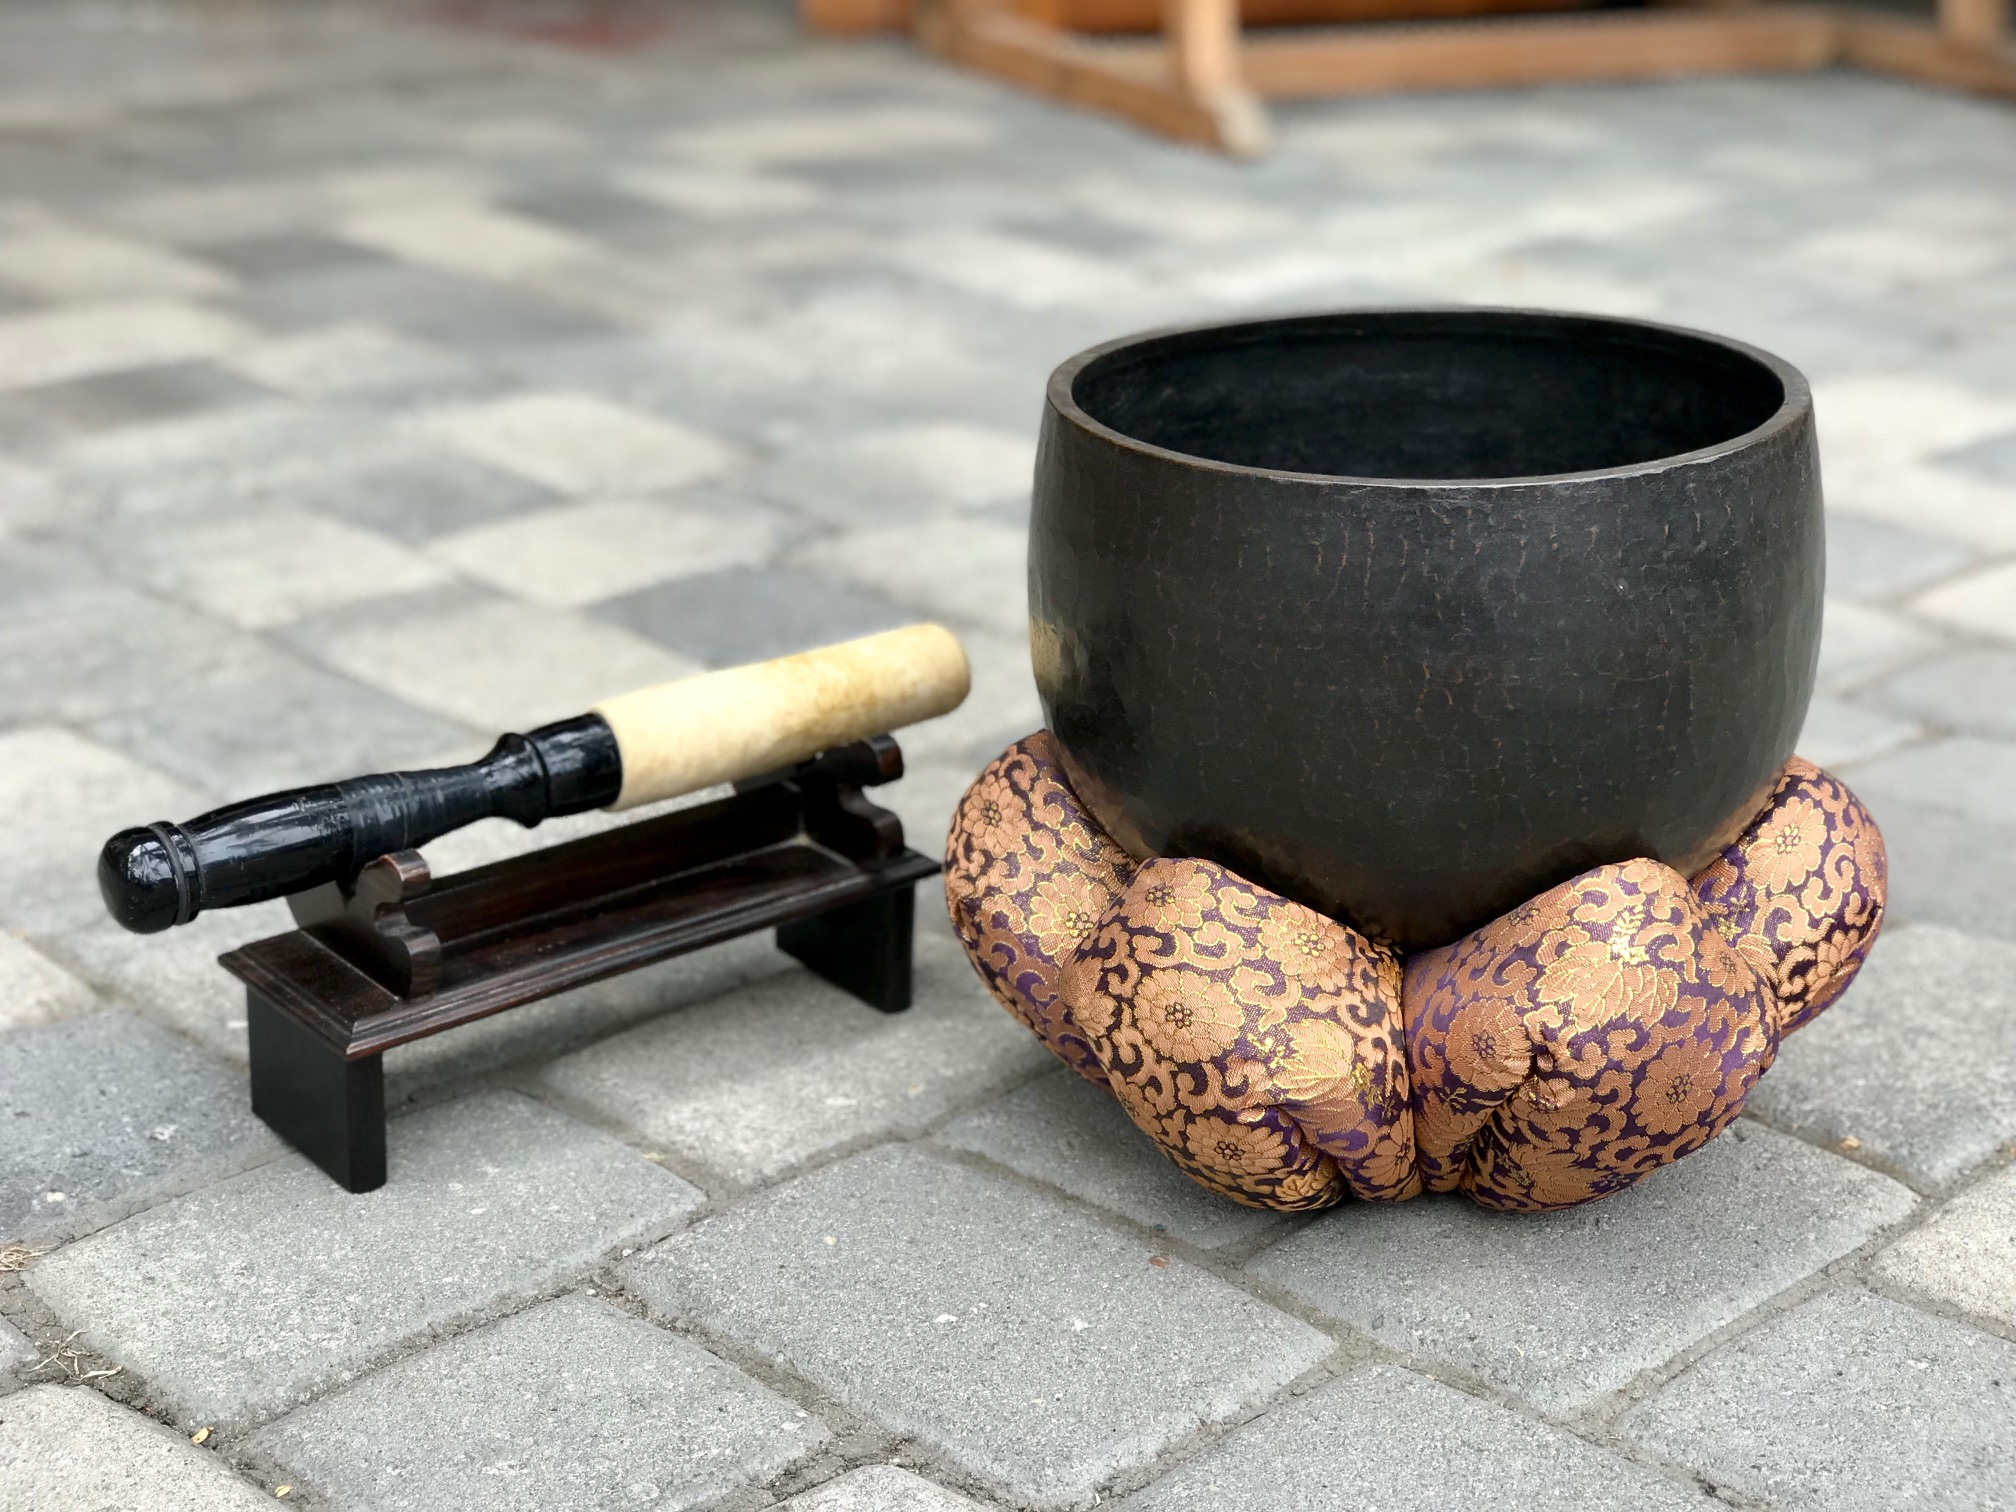 "Buddhist Temple Altar, Hammered Bronze, Singing Bowl and Cushion Stand, with Wooden and hyde Striker and Striker Stand Japan, 7"" x 10"" (10 1/2"" x 12 1/2"" with cuchion, striker - 13 1/2"" x 2"" (5 1/2"" tall with striker stand) $1250., thedavidalancollection.com , solana beach, ca,"